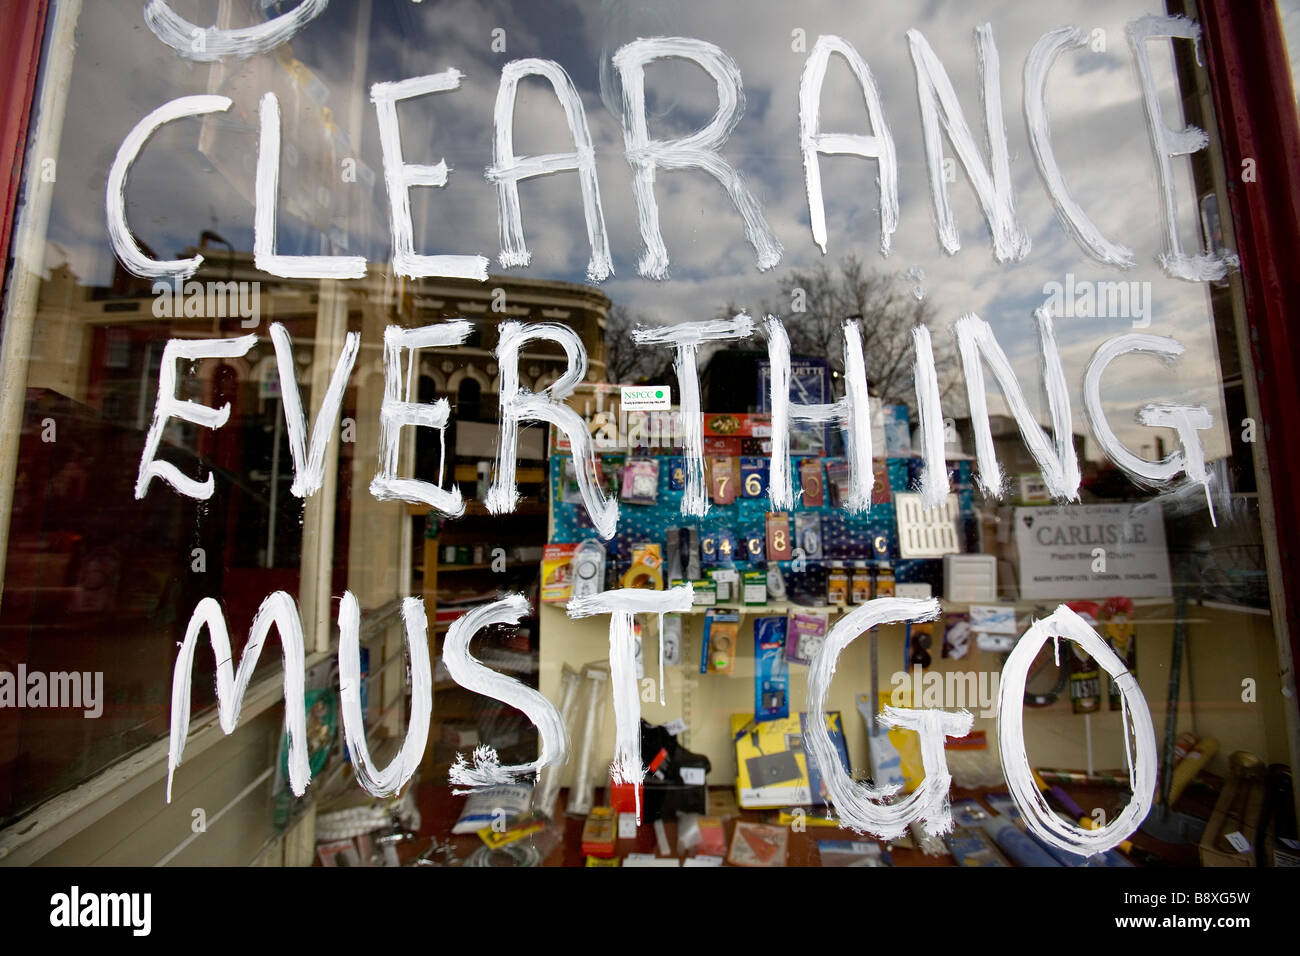 'Clearance everything must go' sign in a shop window in London as the recession hits the United Kingdom, - Stock Image